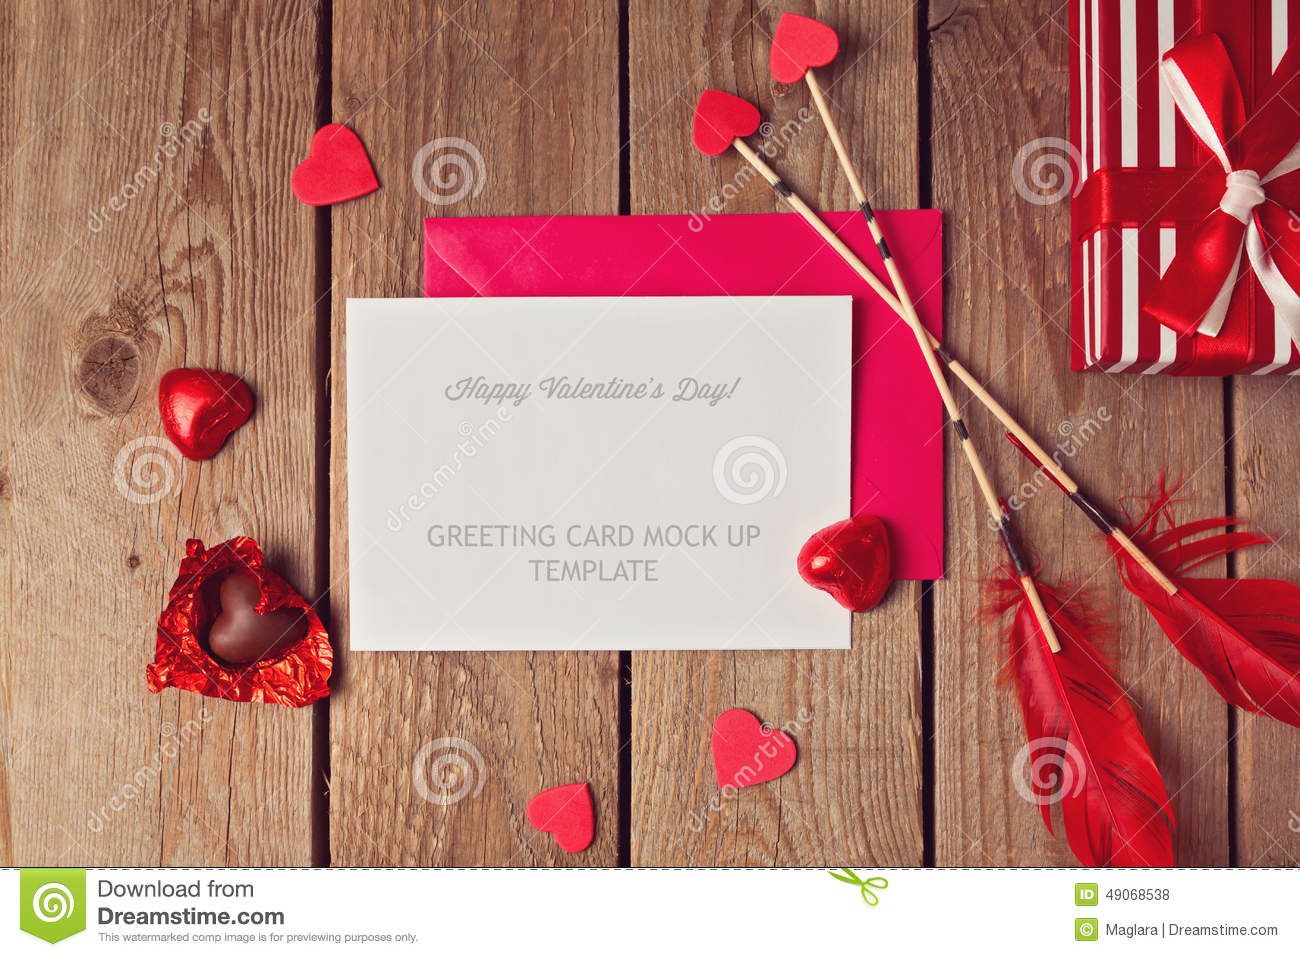 Valentines Day Greeting Card Mock Up Photo Image 49068538 – Greeting Cards of Valentine Day